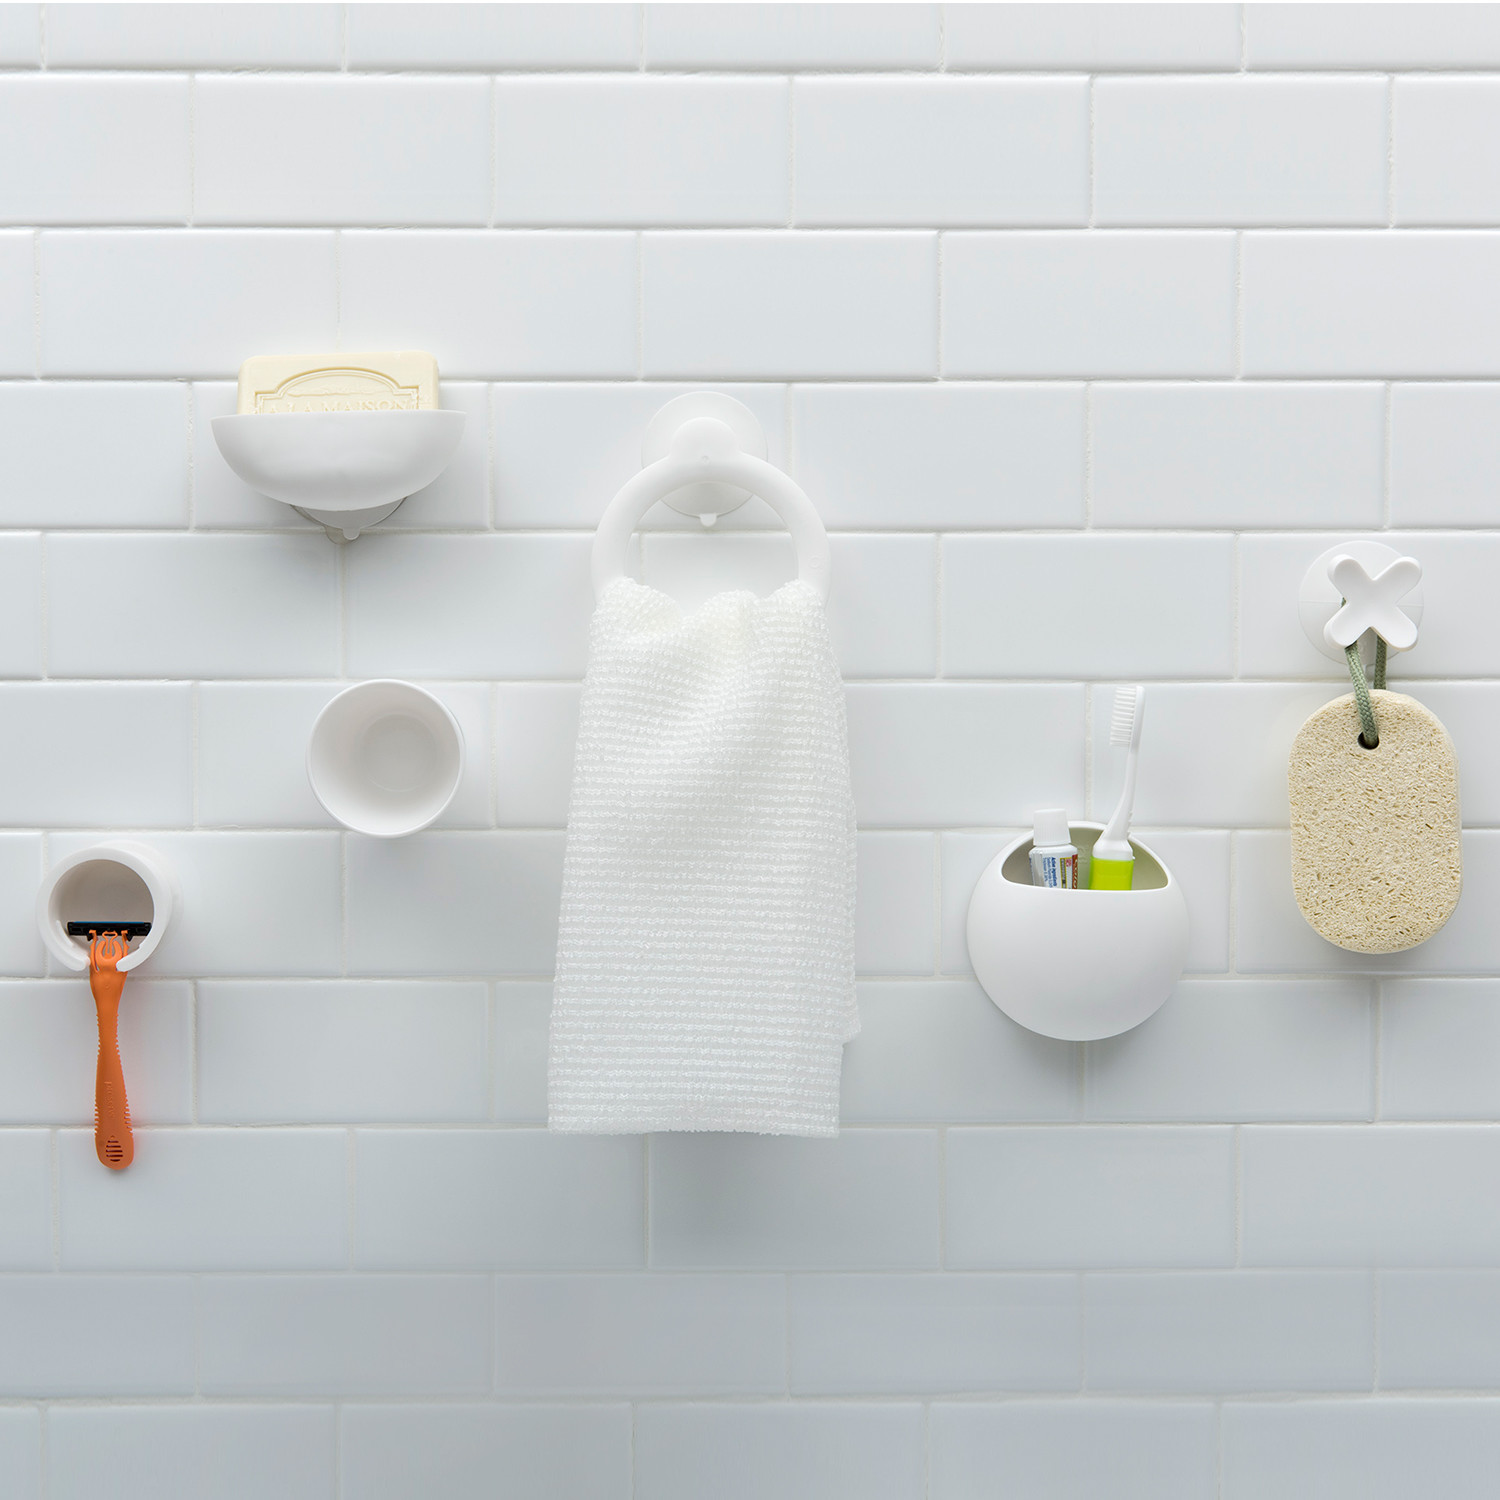 Shower Organization // Set of 6 - SanEi - Touch of Modern